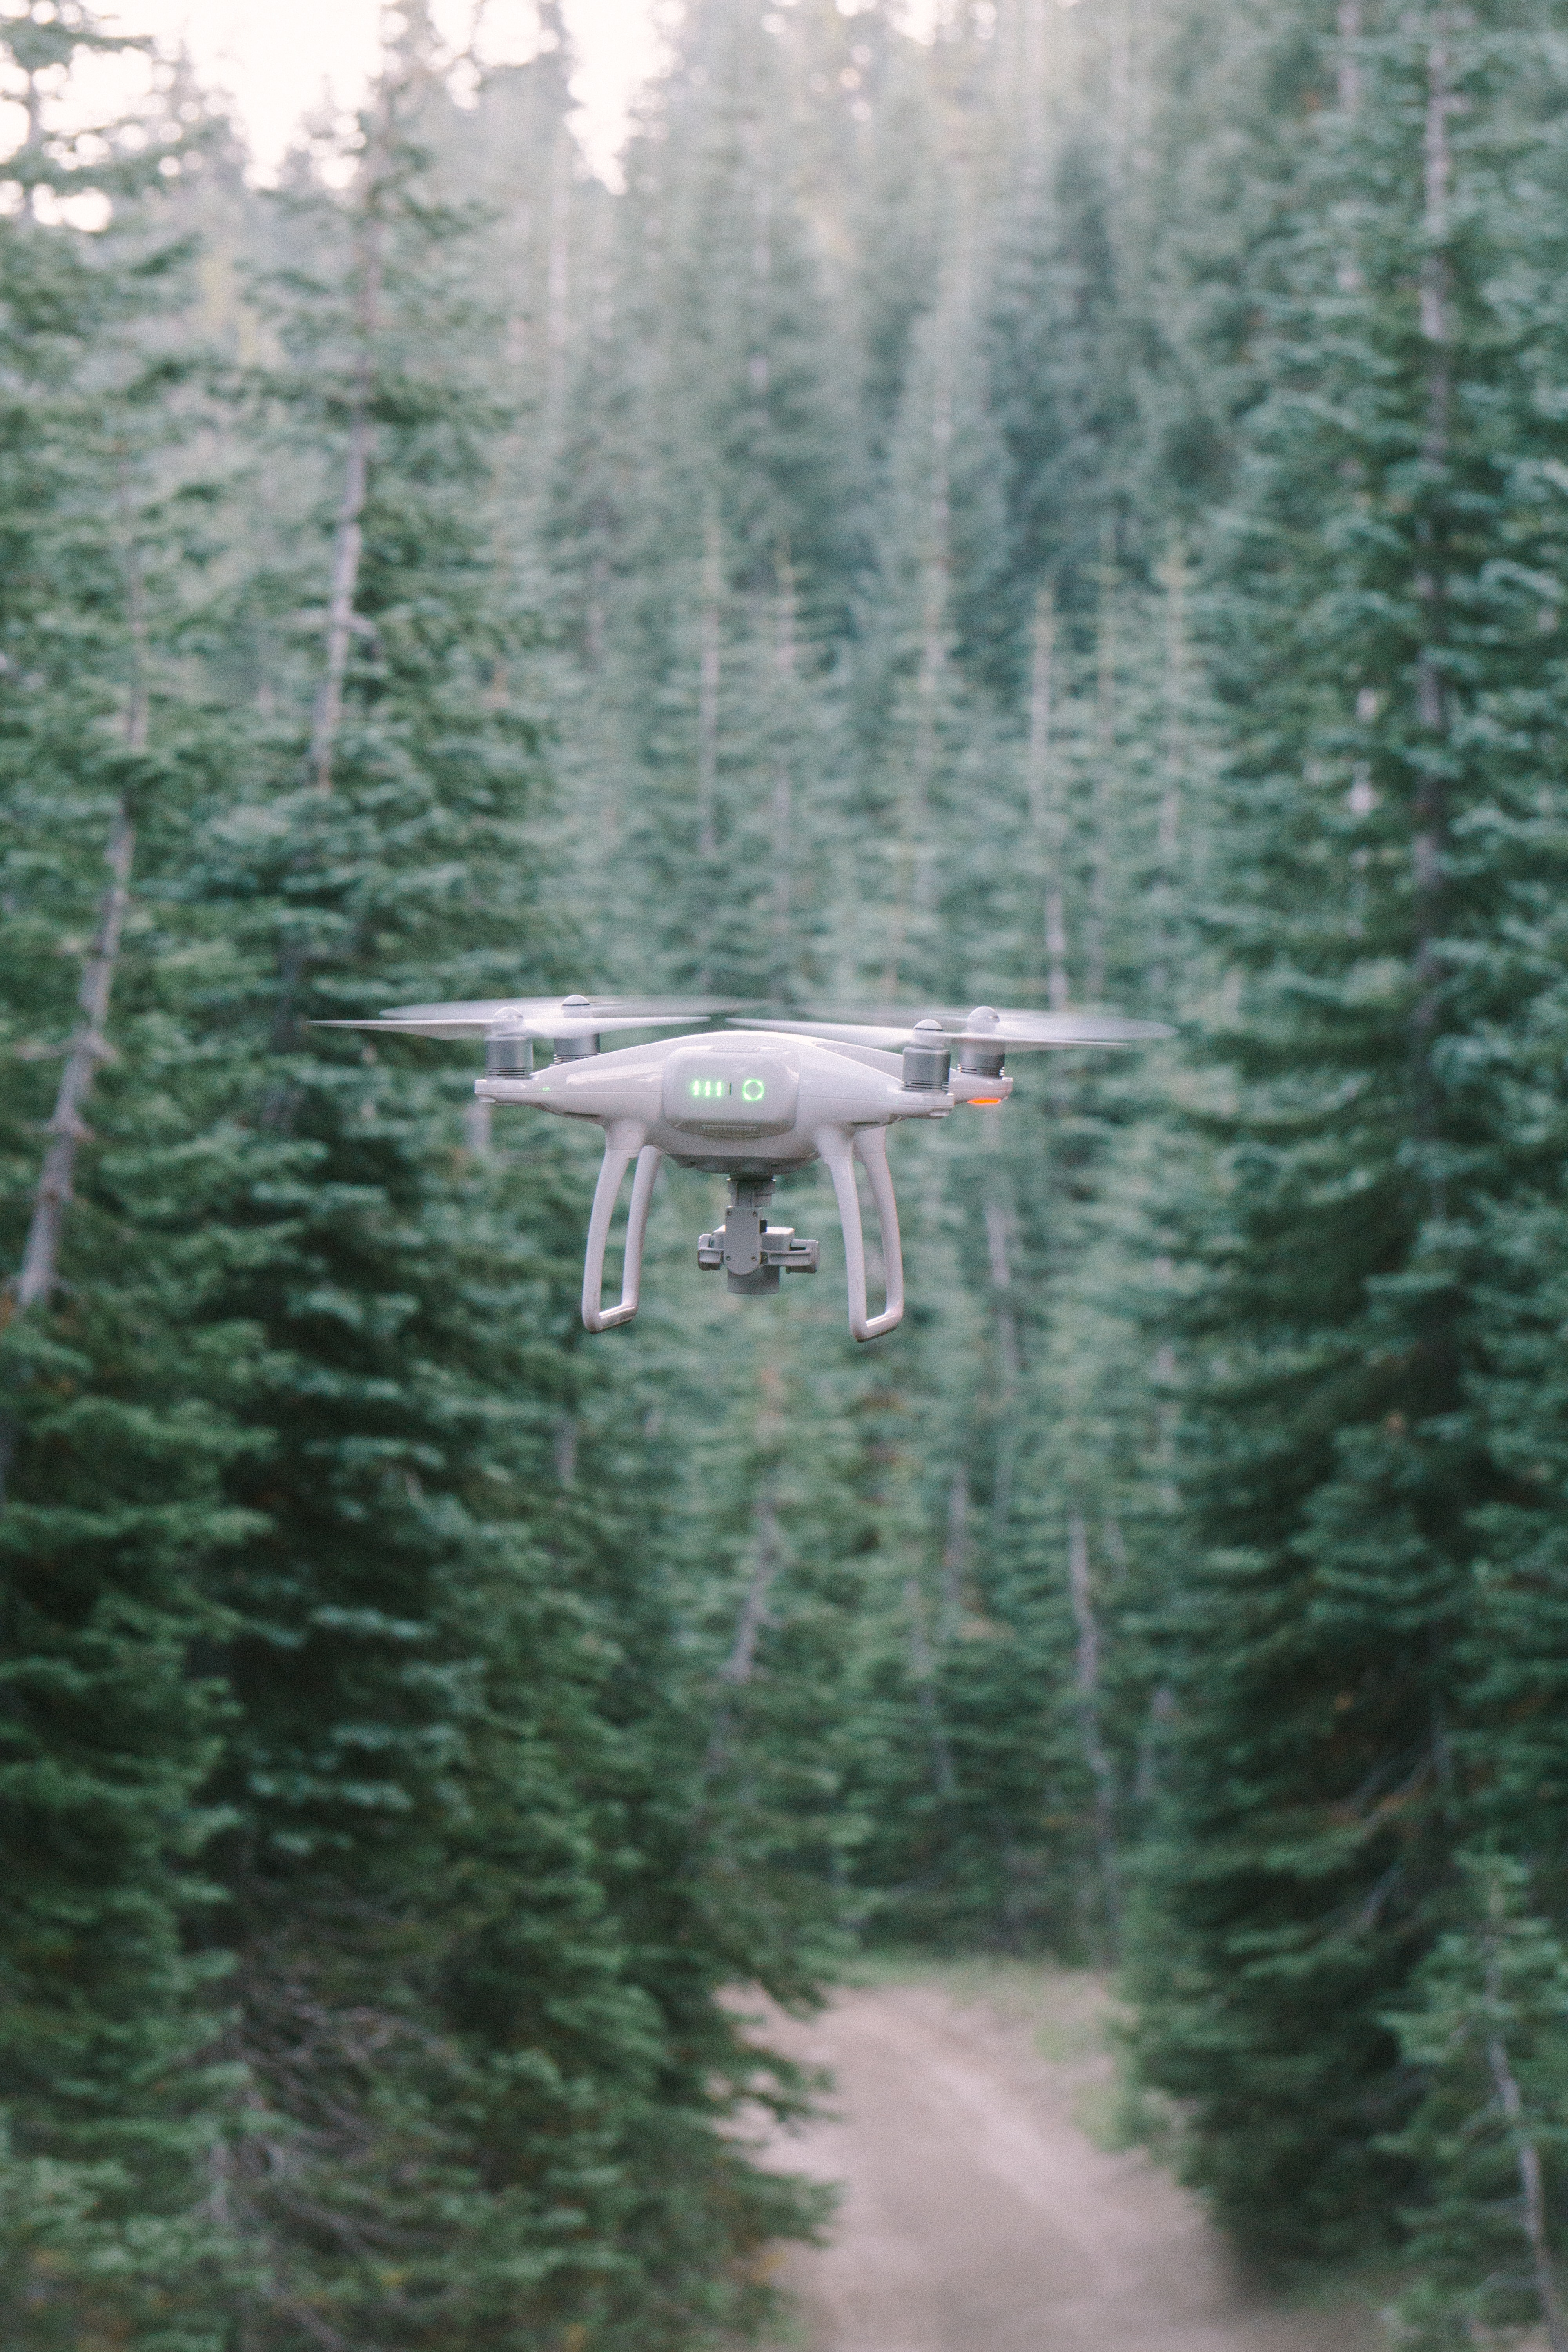 gray quadcopter drone in the middle of forest during day